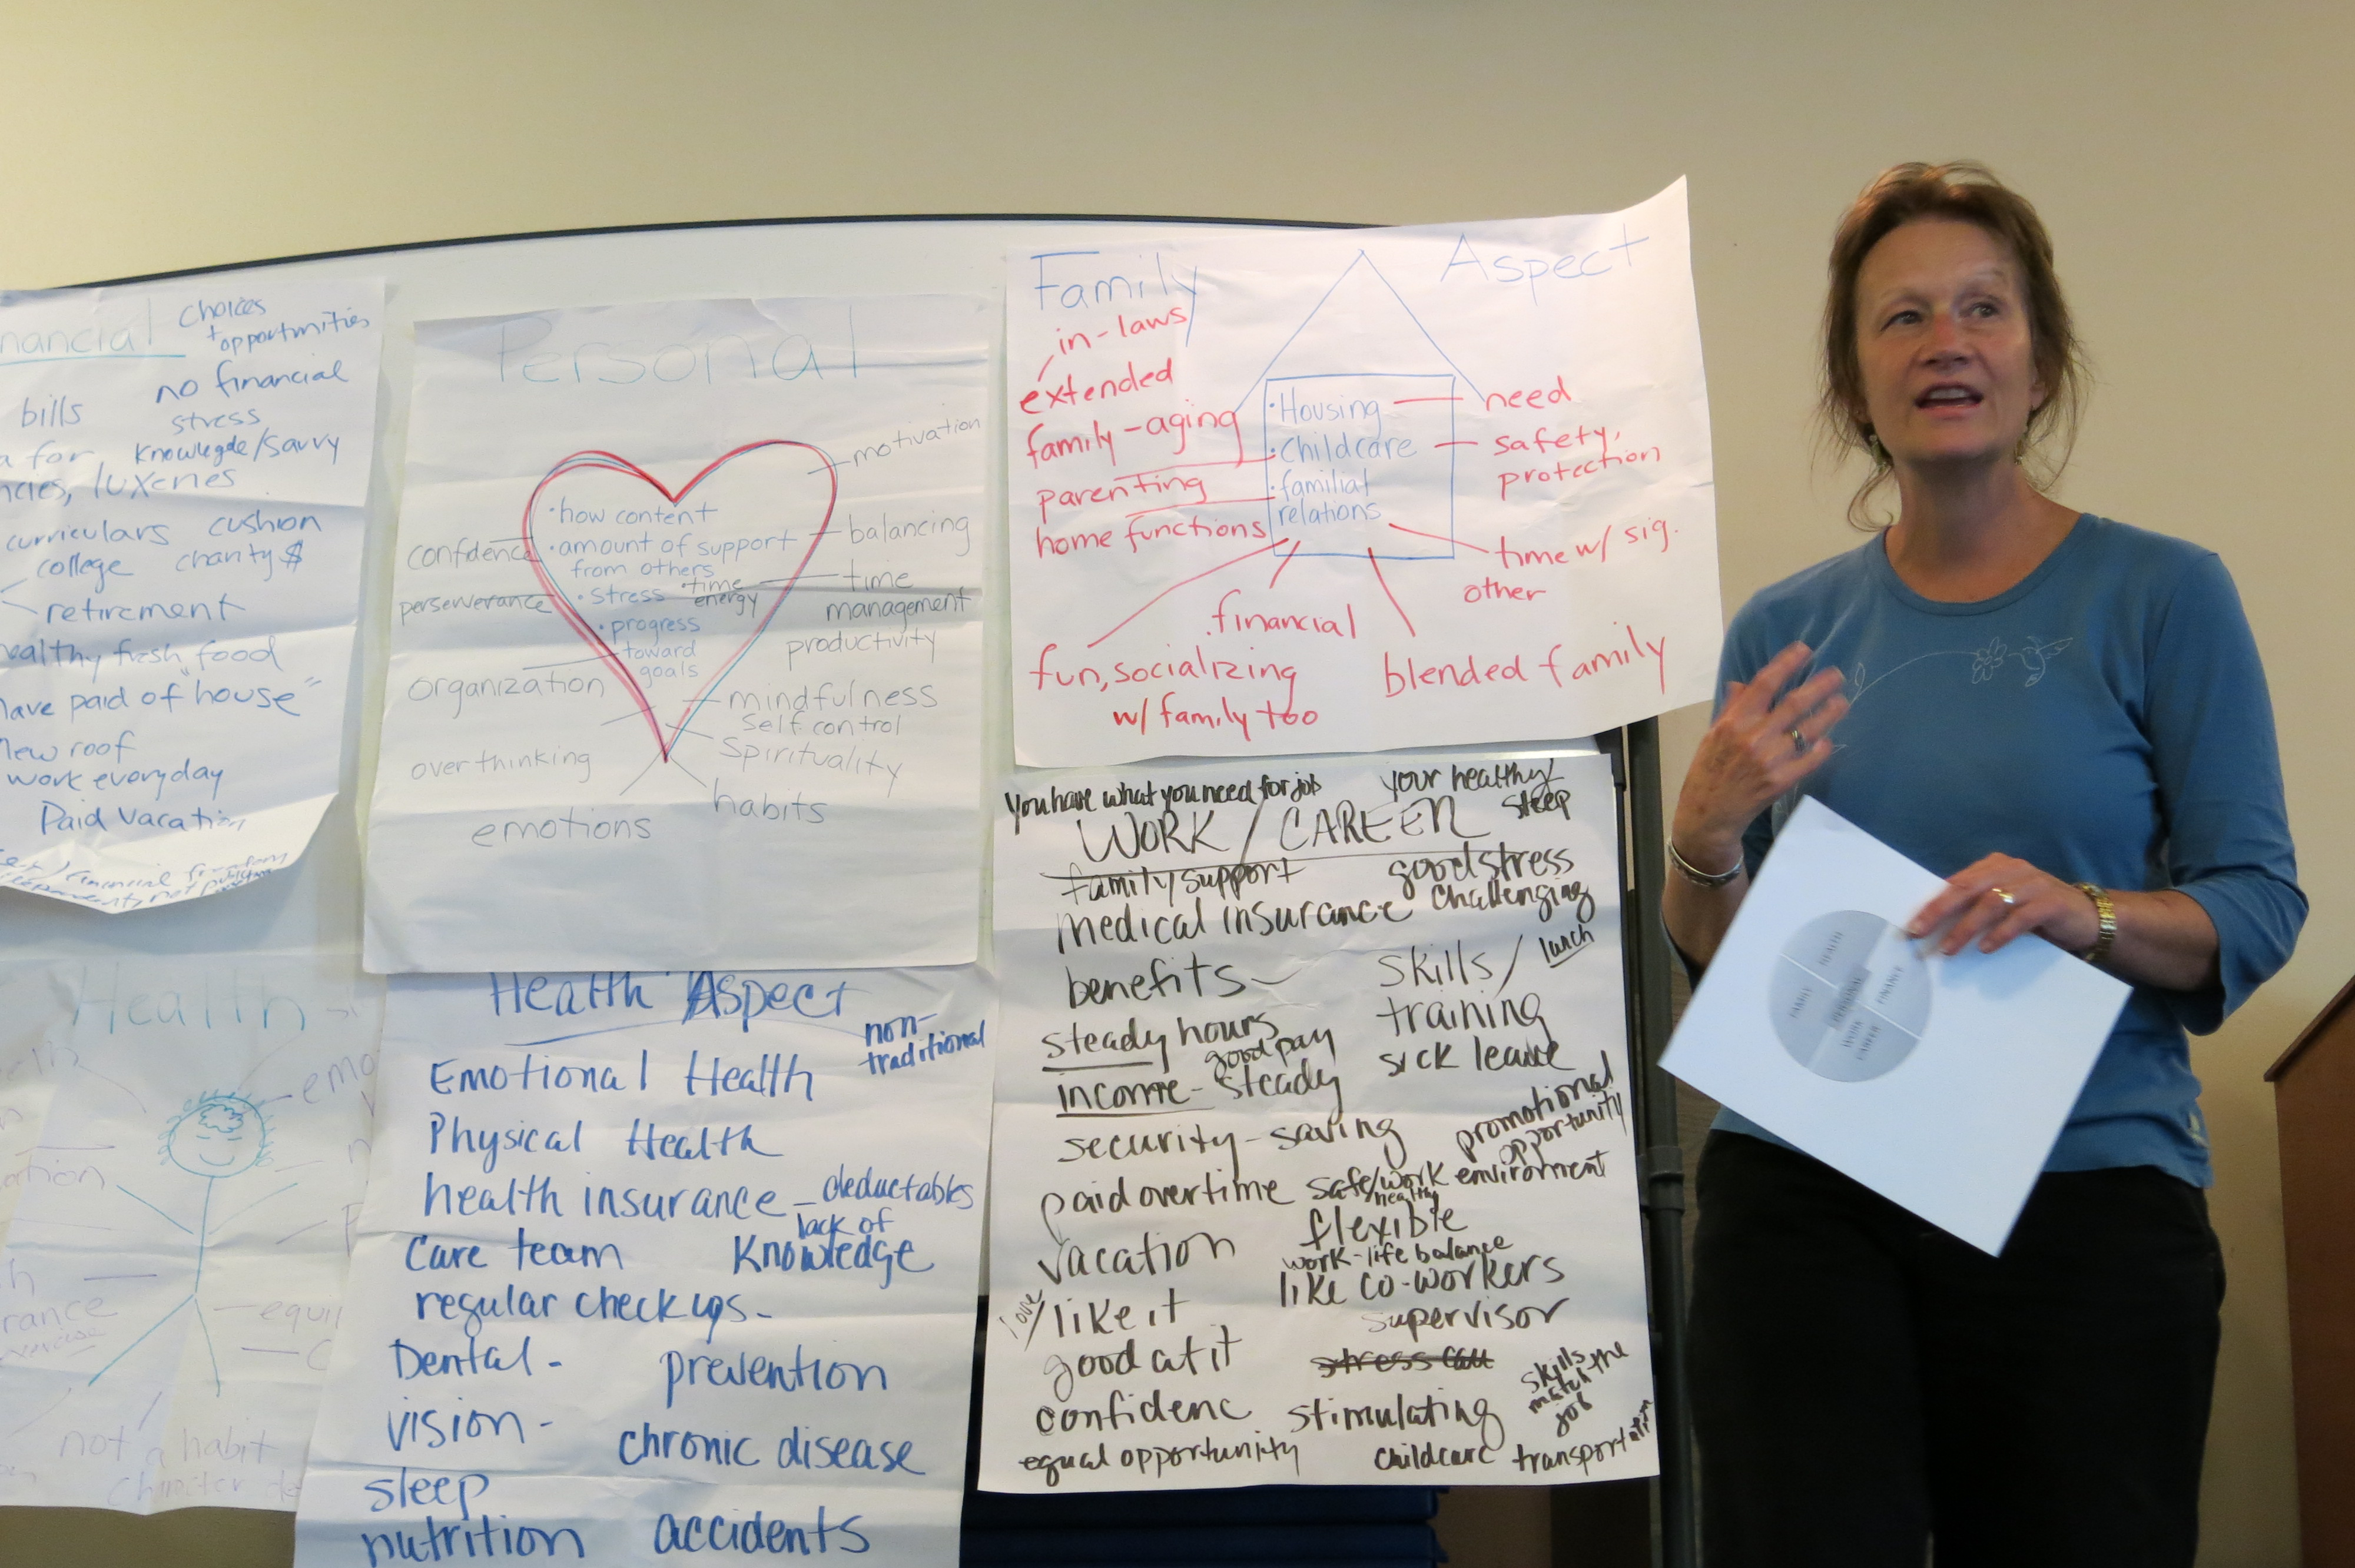 <p>Routt County Human Services director Vickie Clarke addresses a Routt to Work meetingin front of a board of concernsbrainstormed by participants.</p>